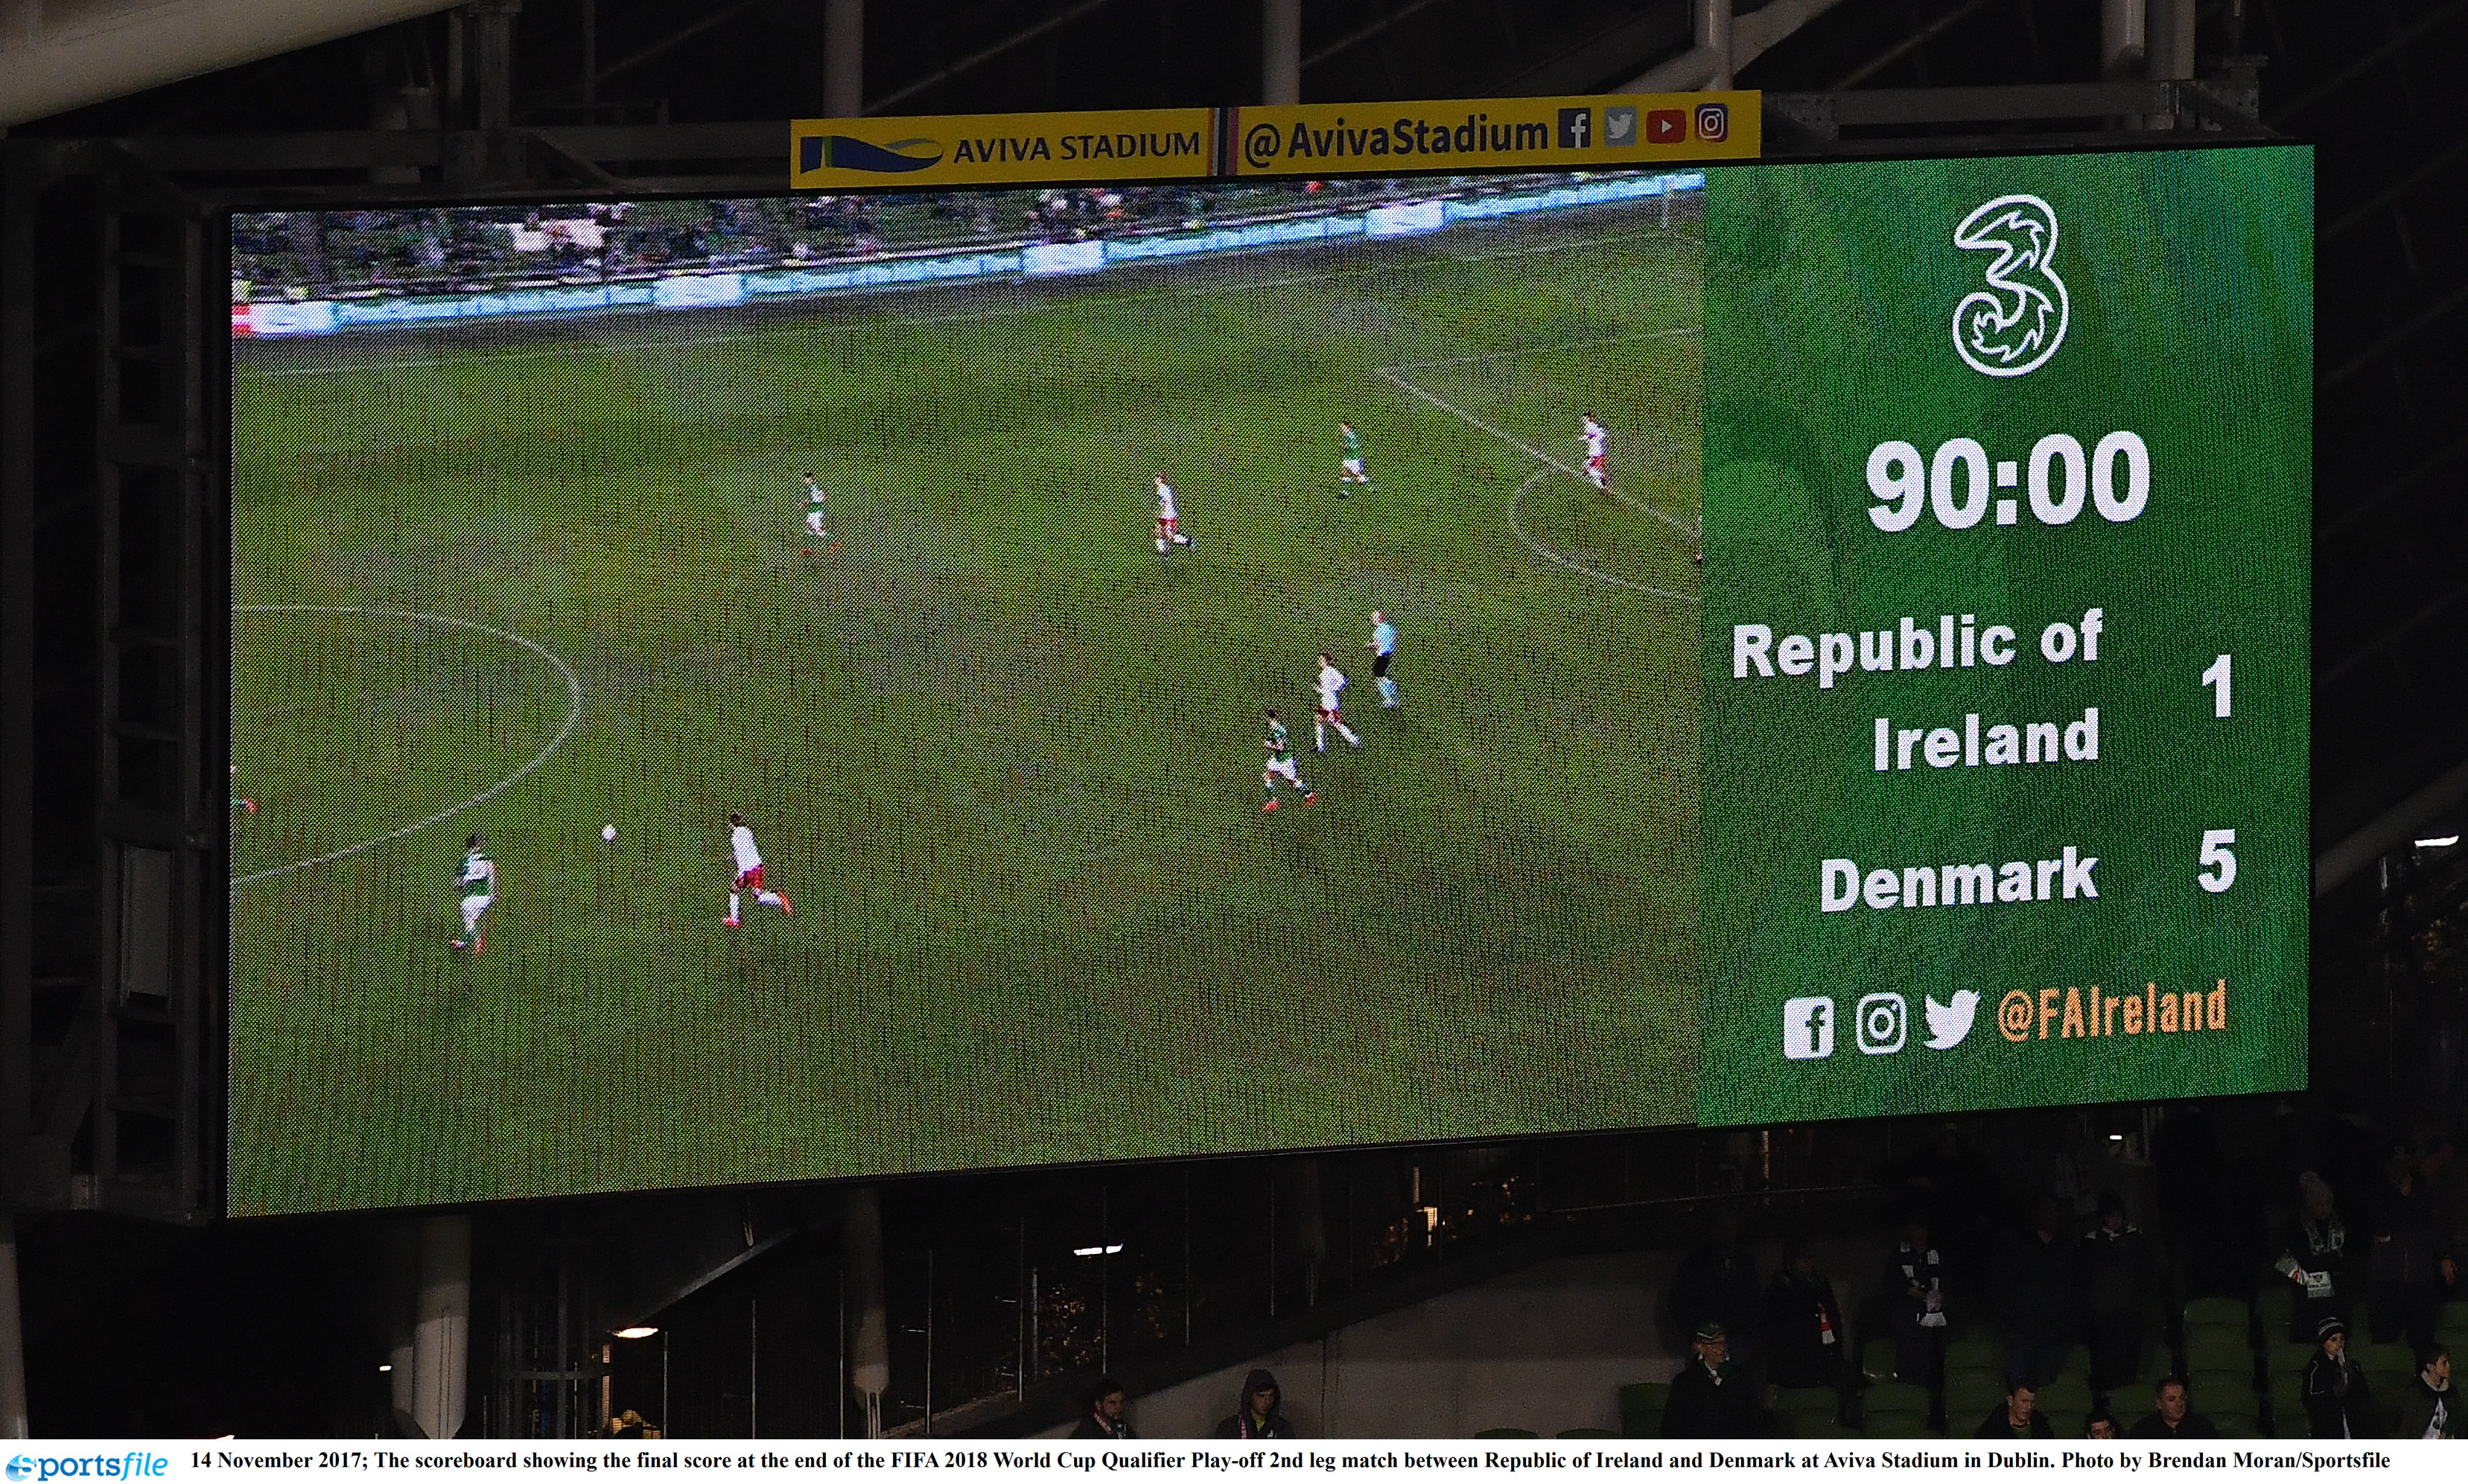 Nothing will change in Irish football until the League of Ireland is